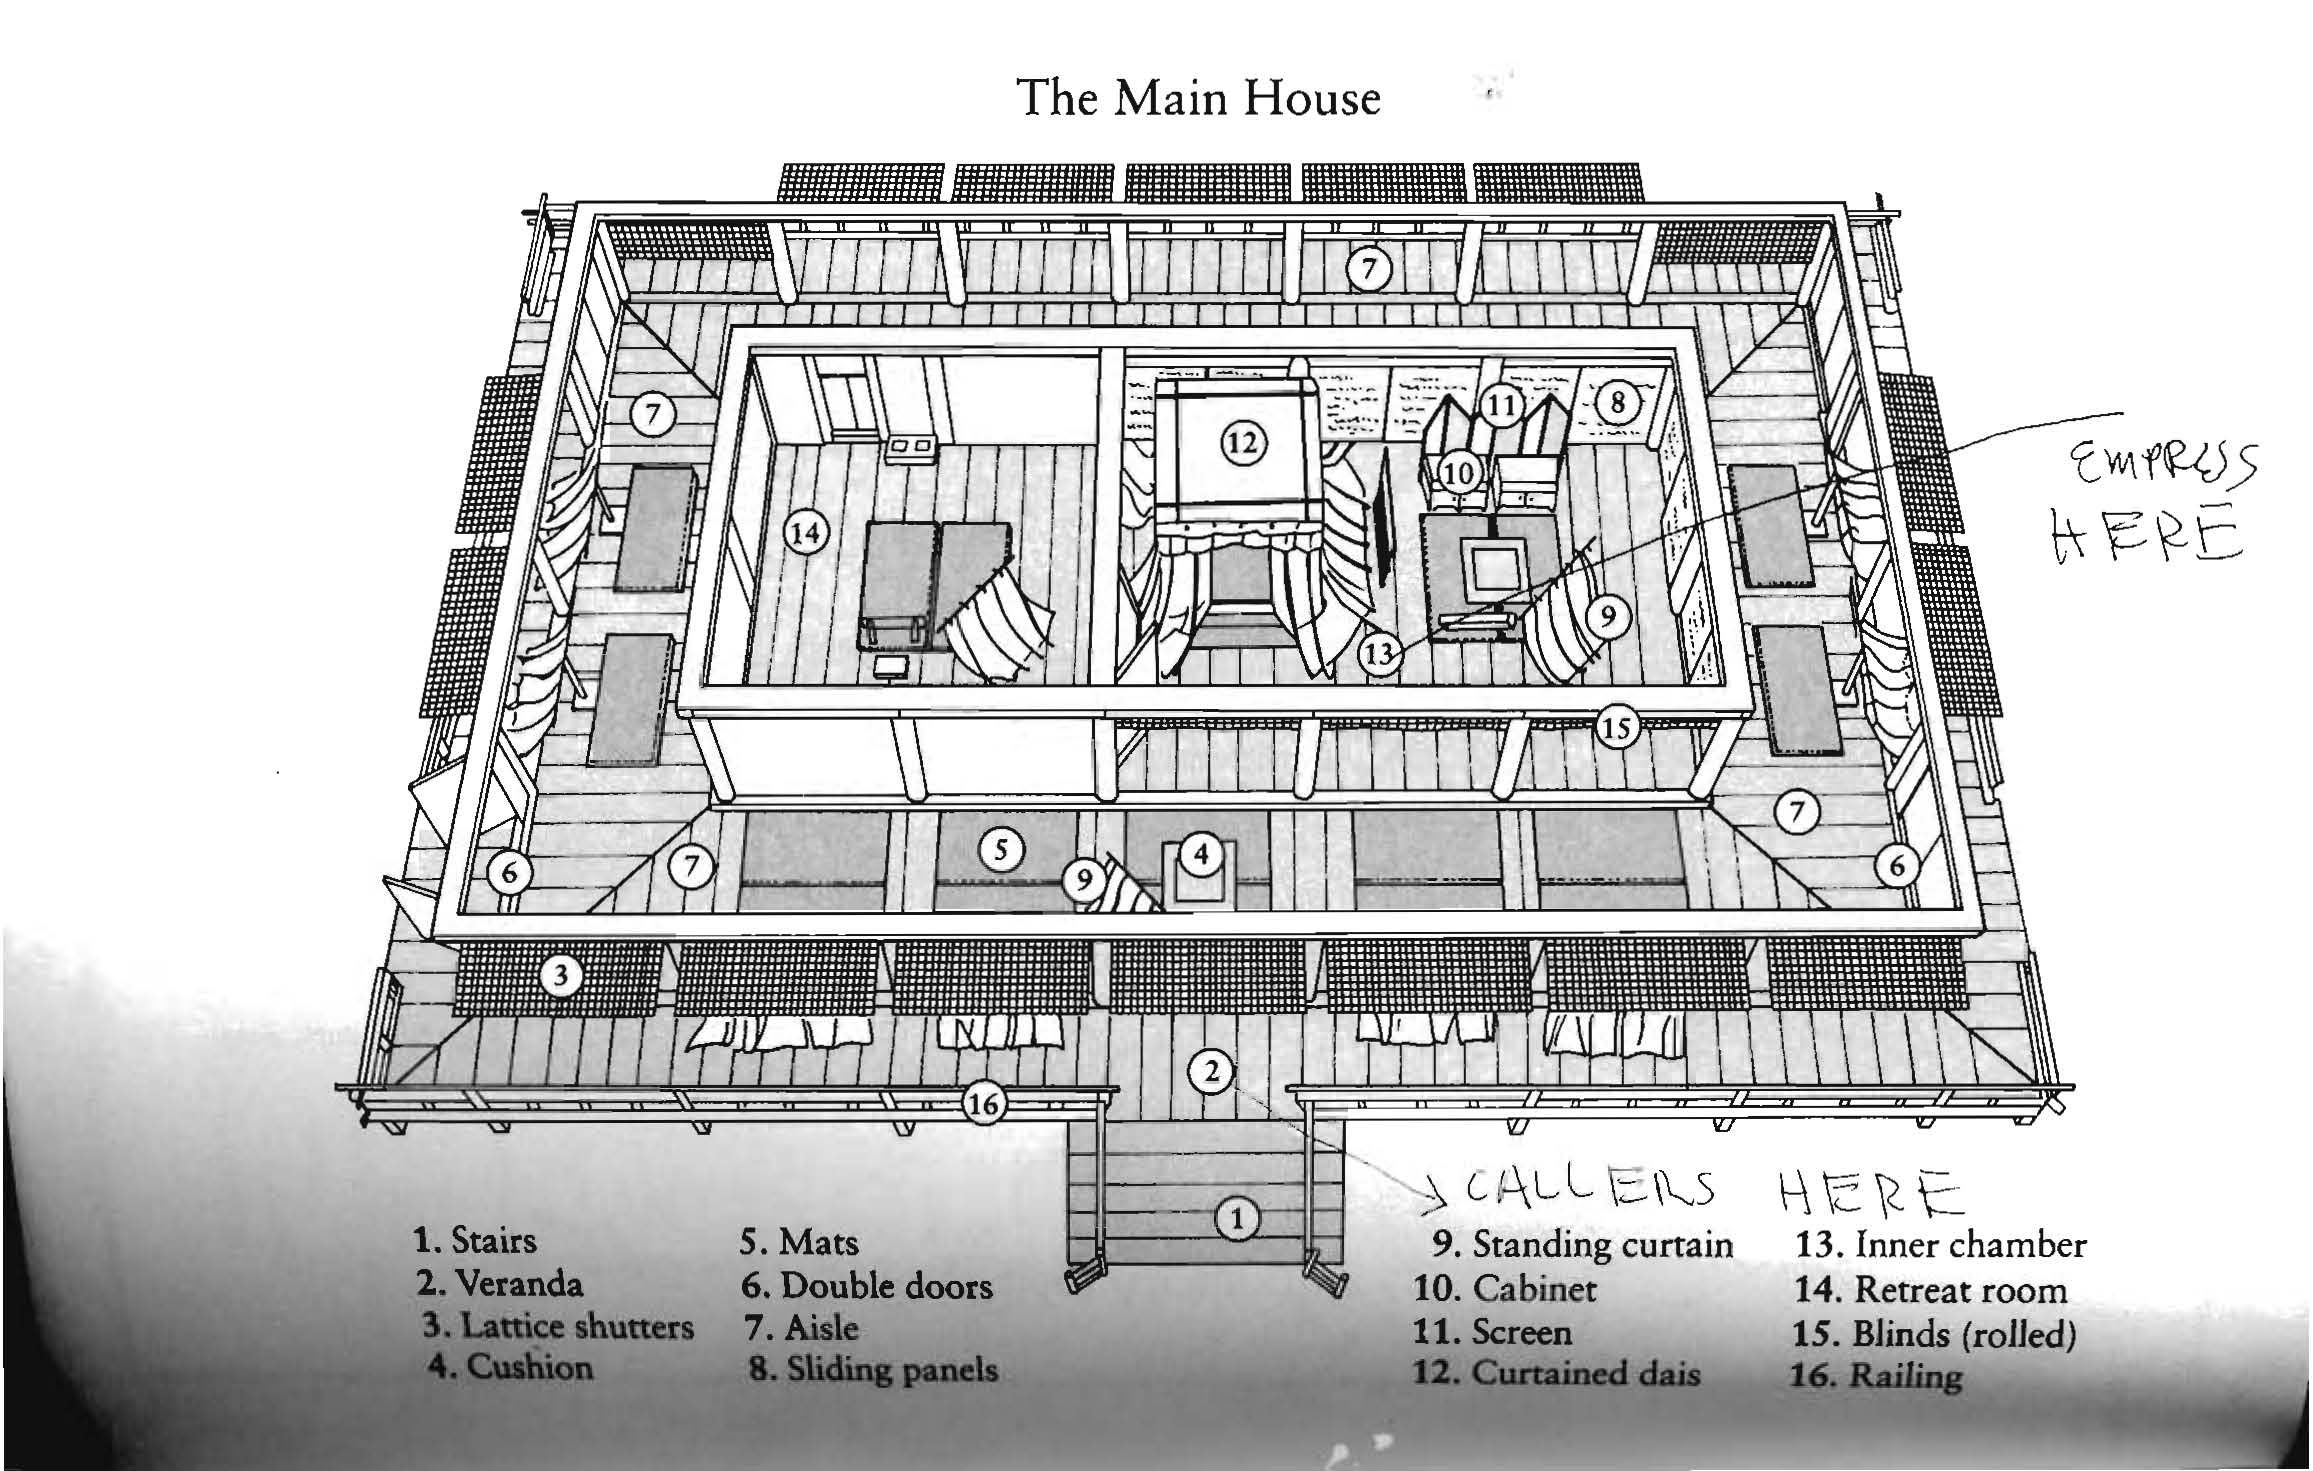 Floorplan of traditional Japanese structure--perfect for small summer house.